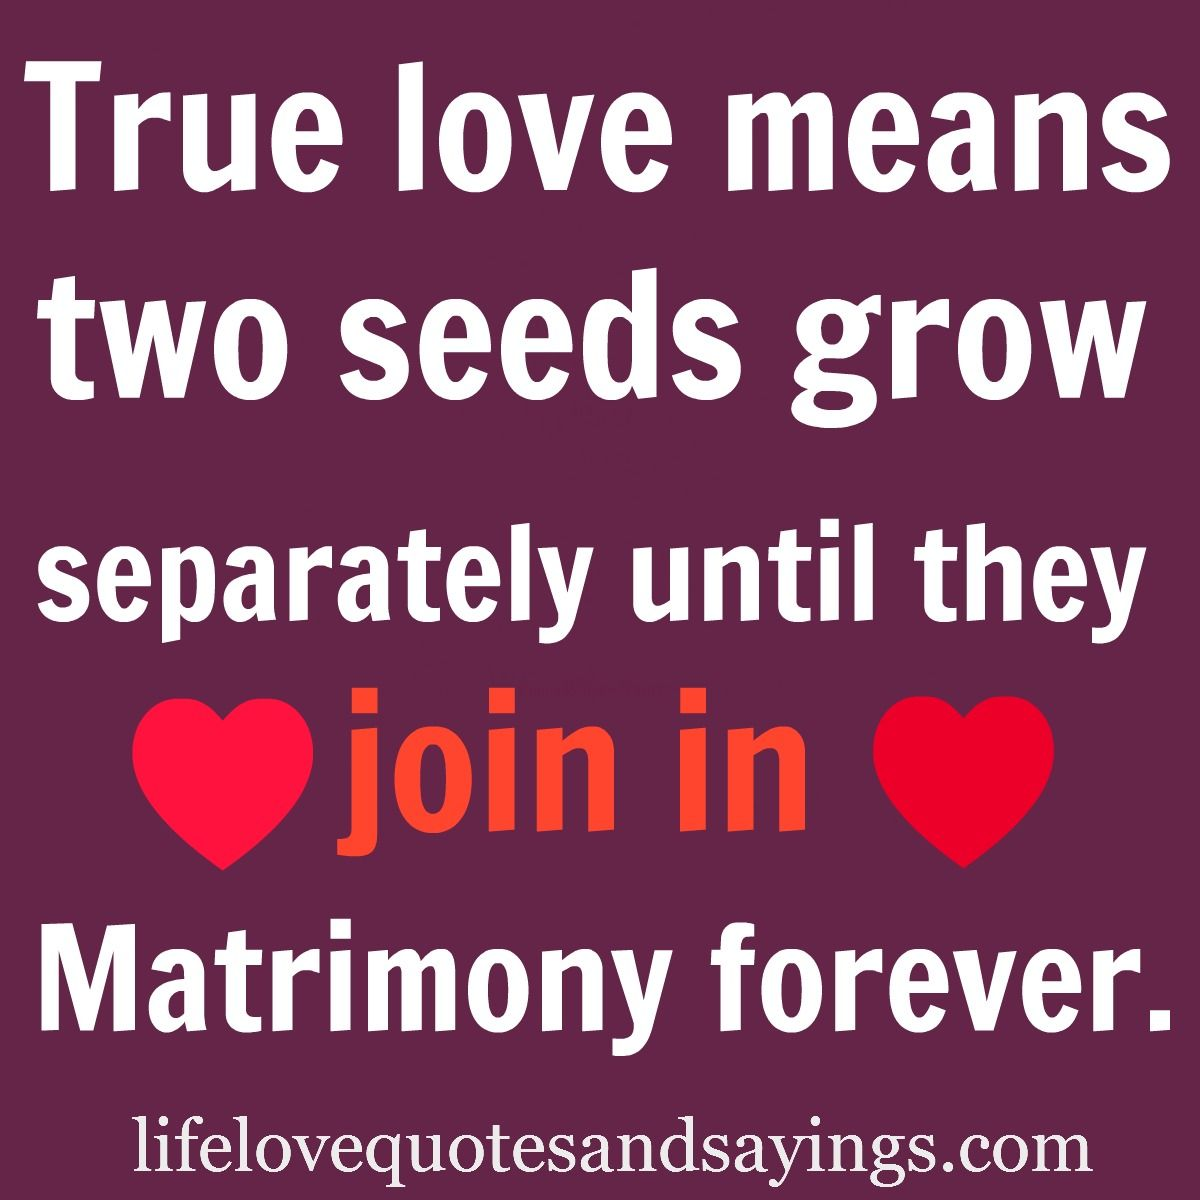 True love means two seeds grow separately until they join in Matrimony forever The best collection of quotes and sayings for every situation in life